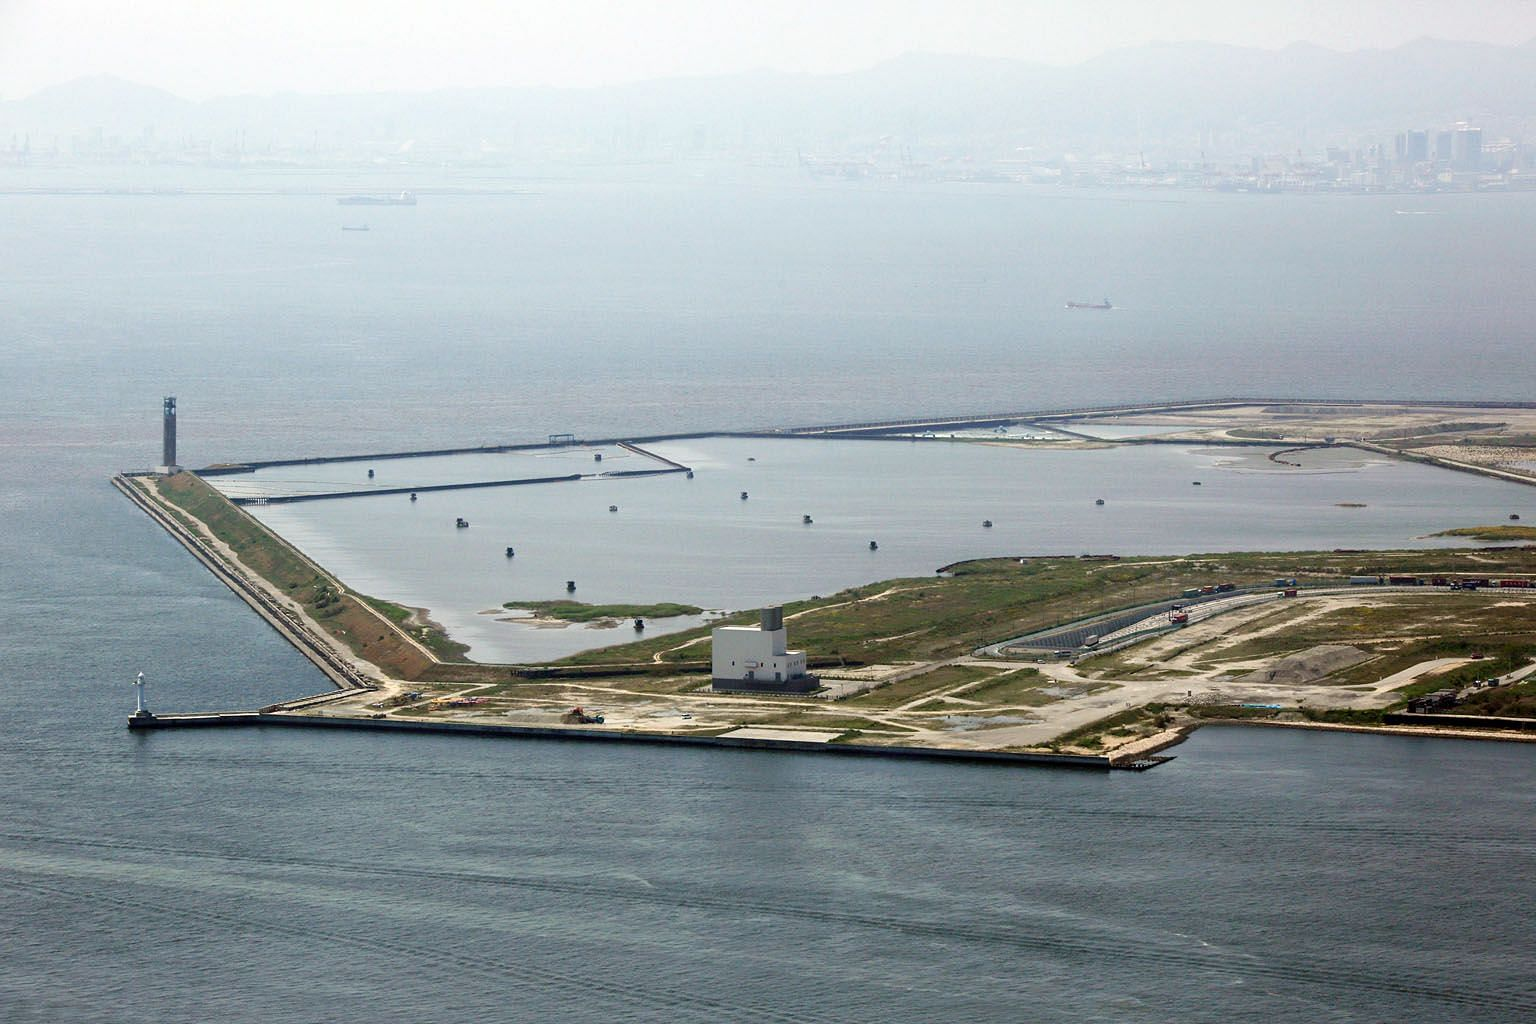 Yumeshima island in Osaka Bay in 2014. Osaka proposed the reclaimed island as a casino resort site, for what could potentially be Japan's first integrated resort. Japan's third-biggest metropolis is the current front runner for one of three coveted l